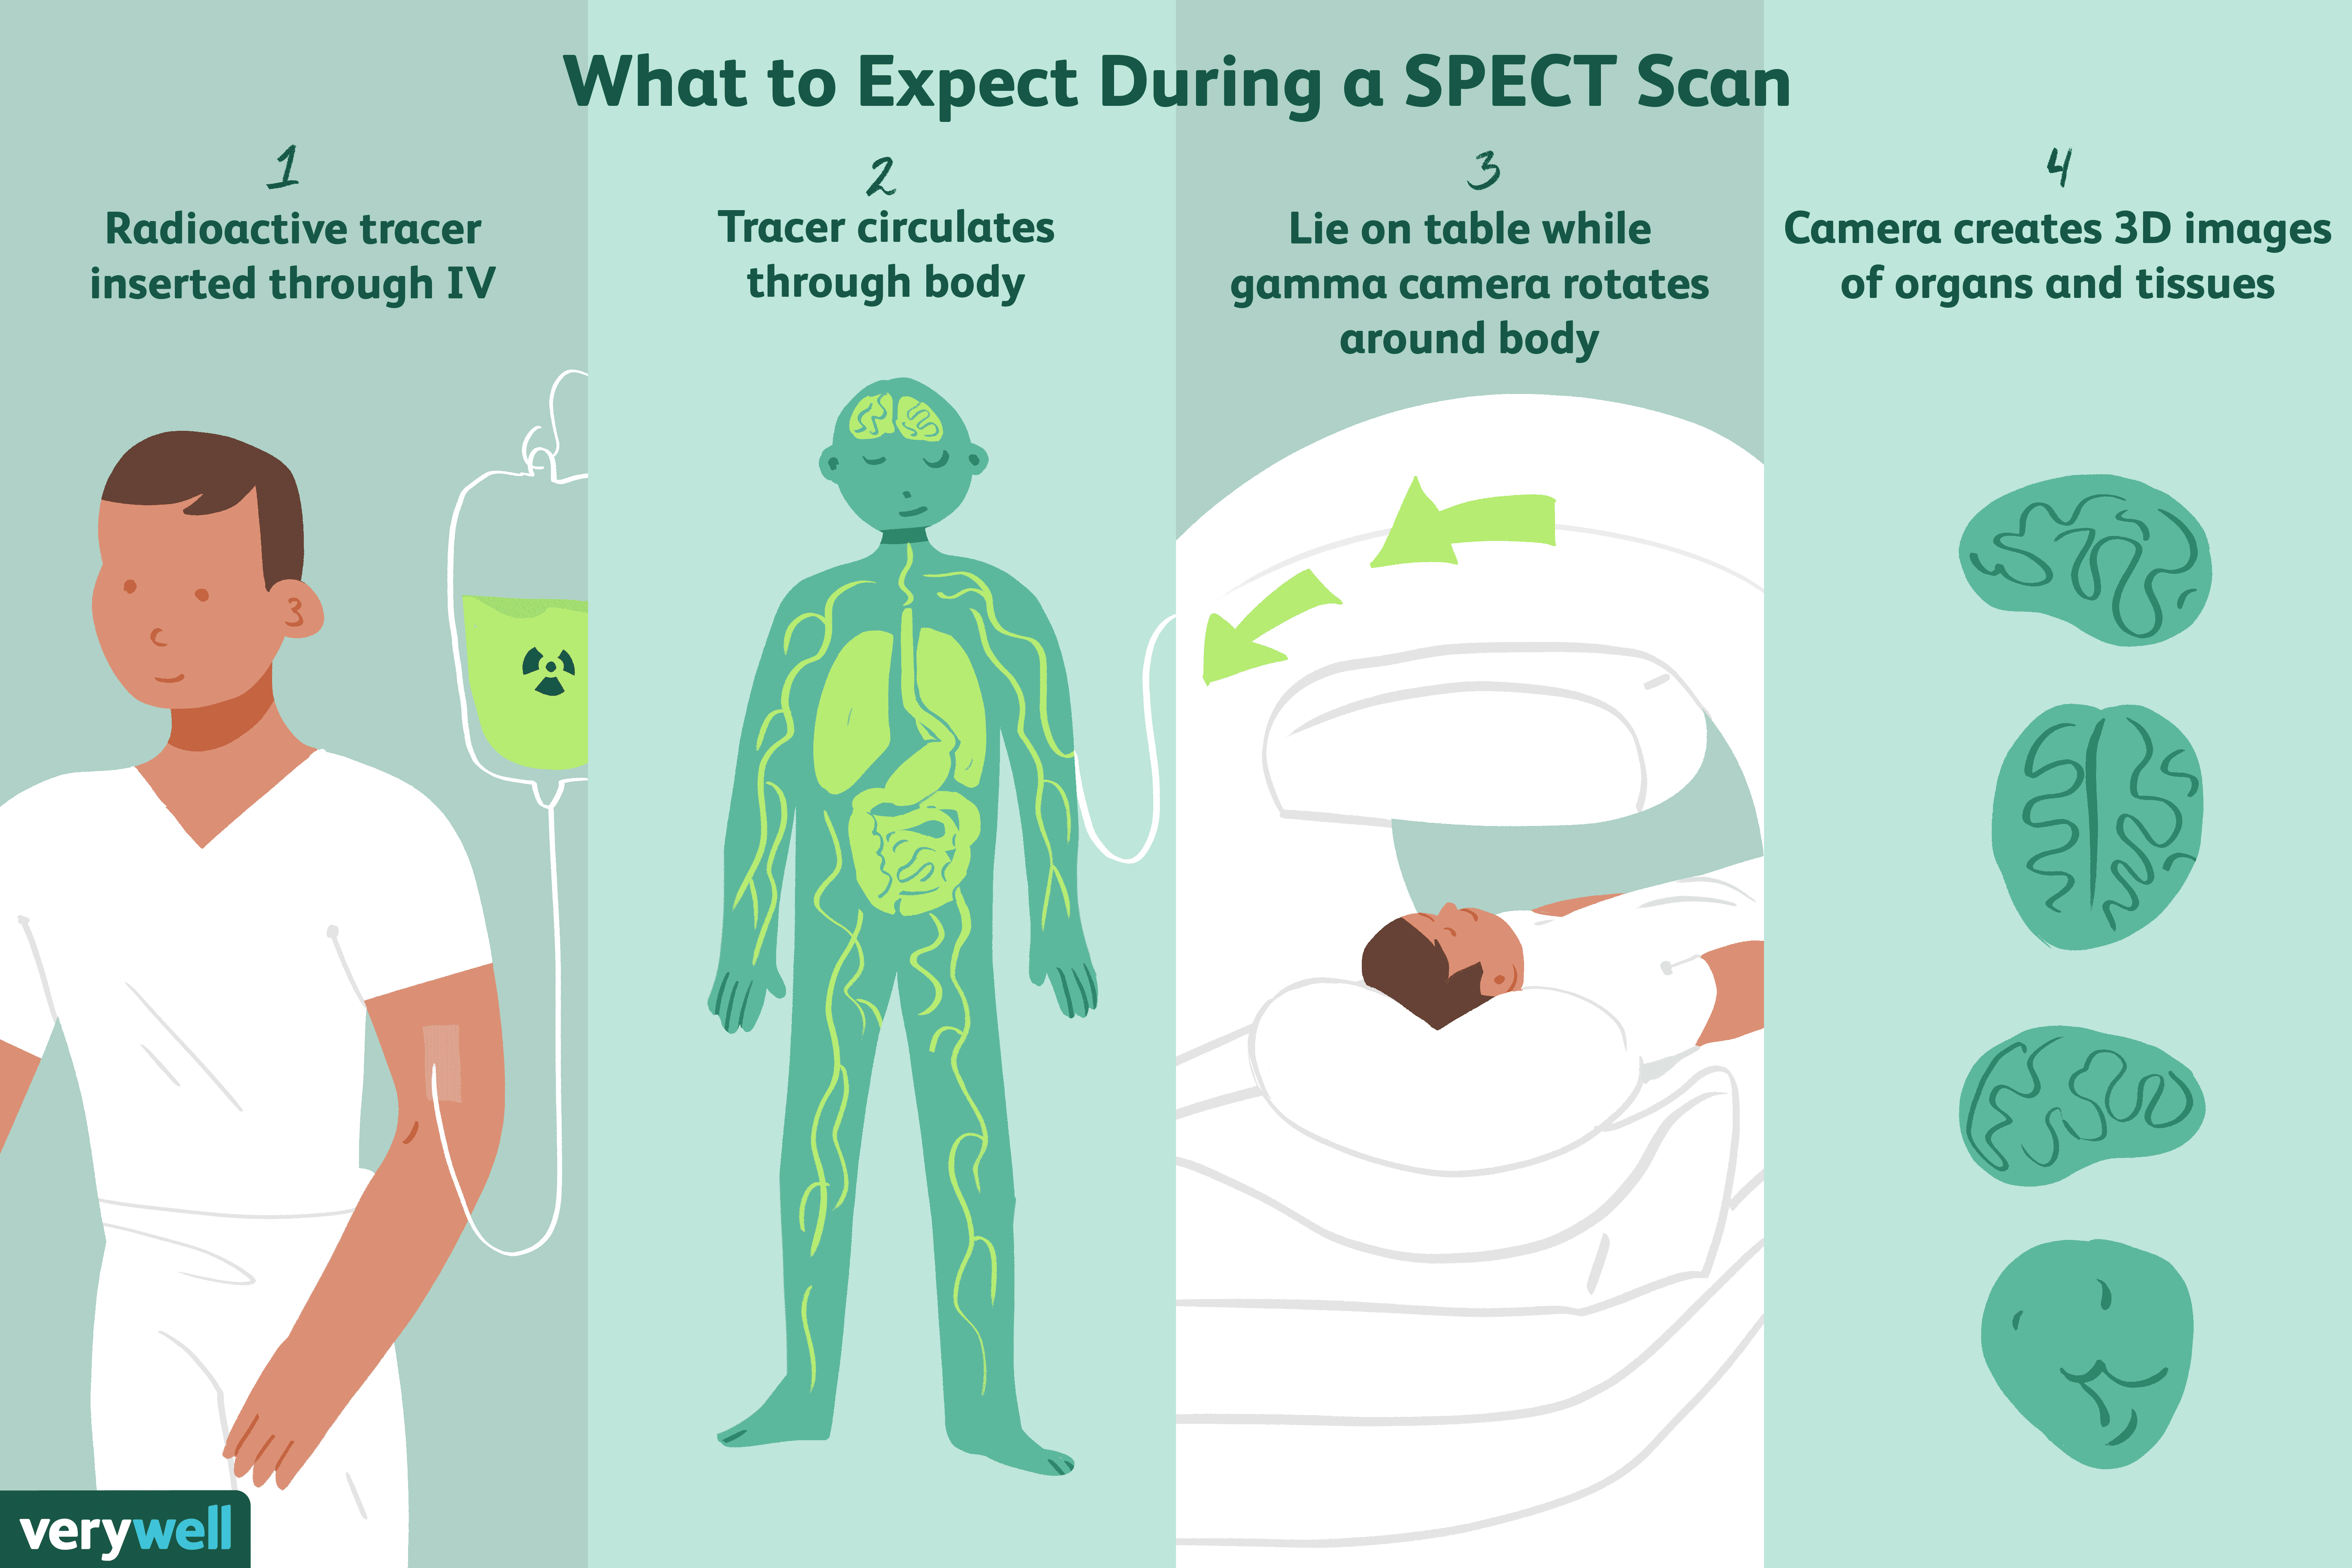 what to expect during a SPECT scan